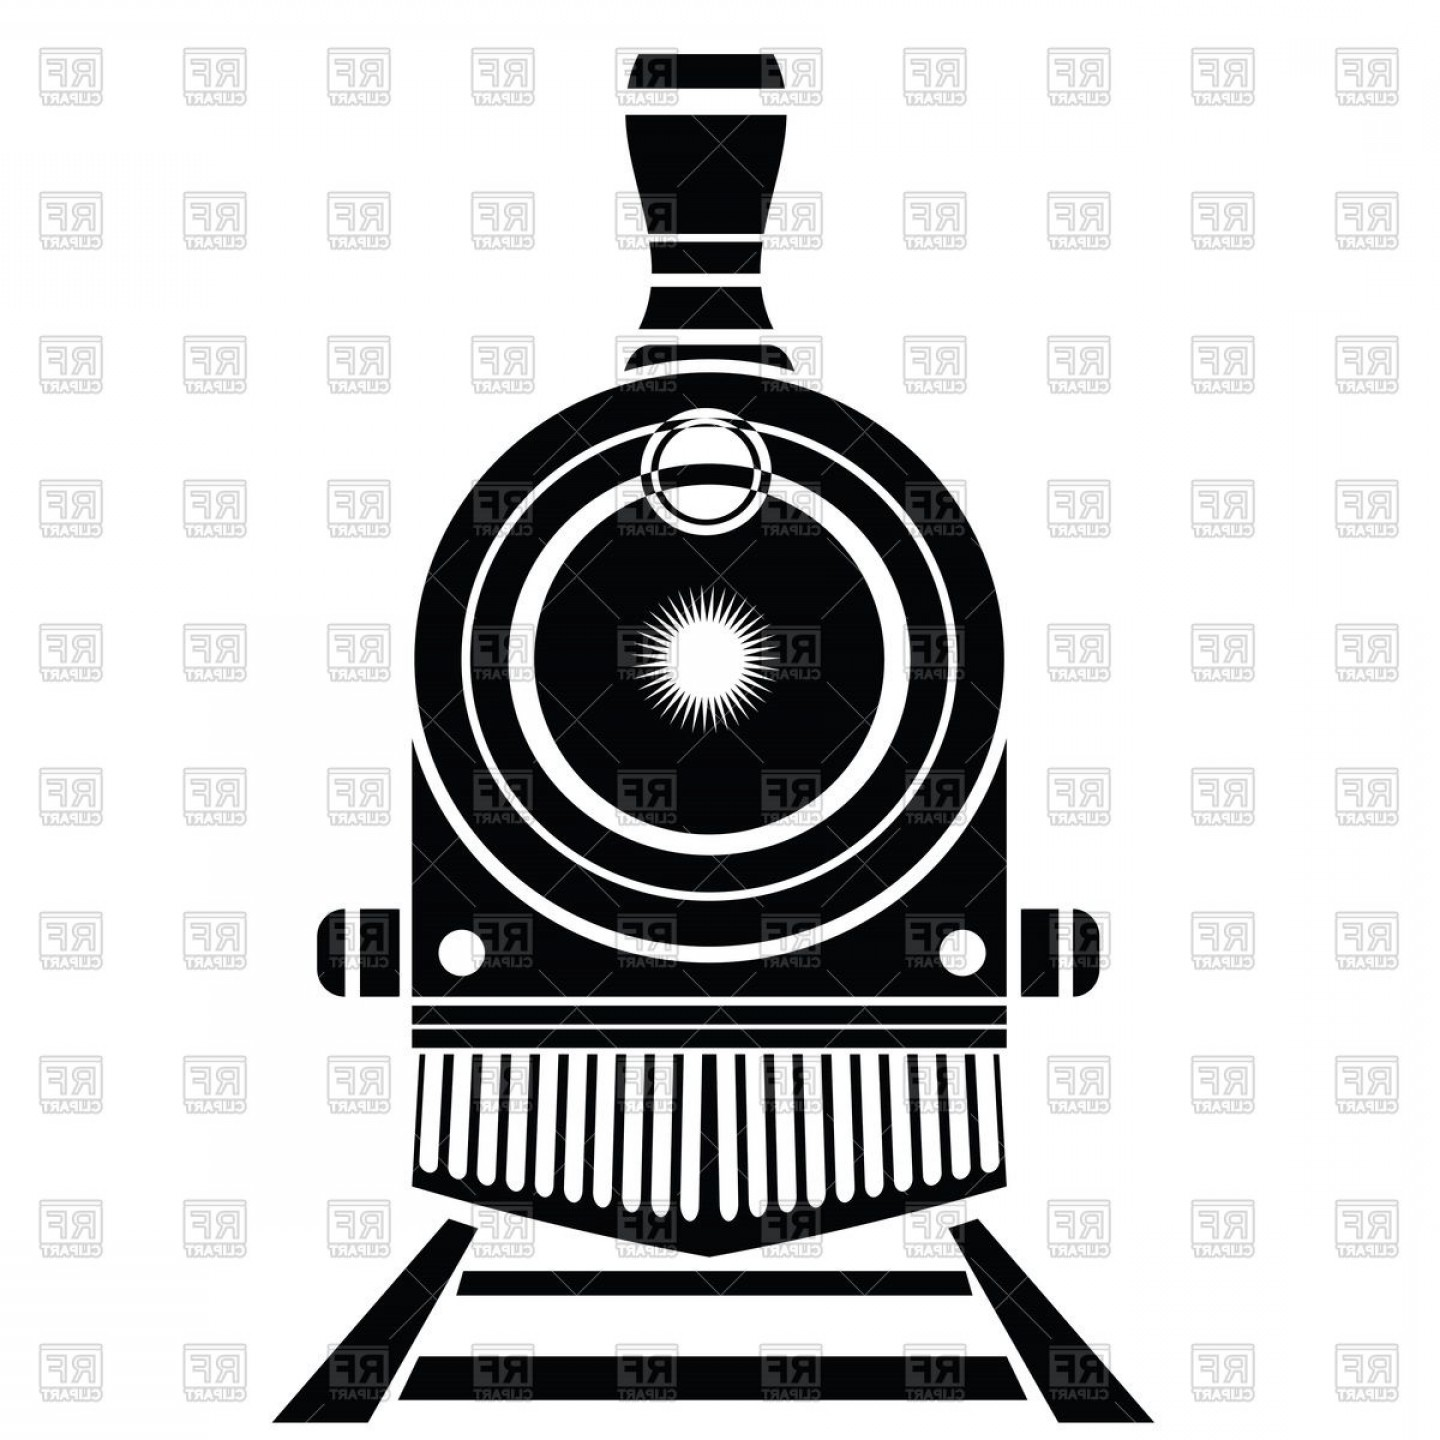 Railroad Logos Vector Format: Silhouette Of Old Locomotive On Railroad Front View Vector Clipart